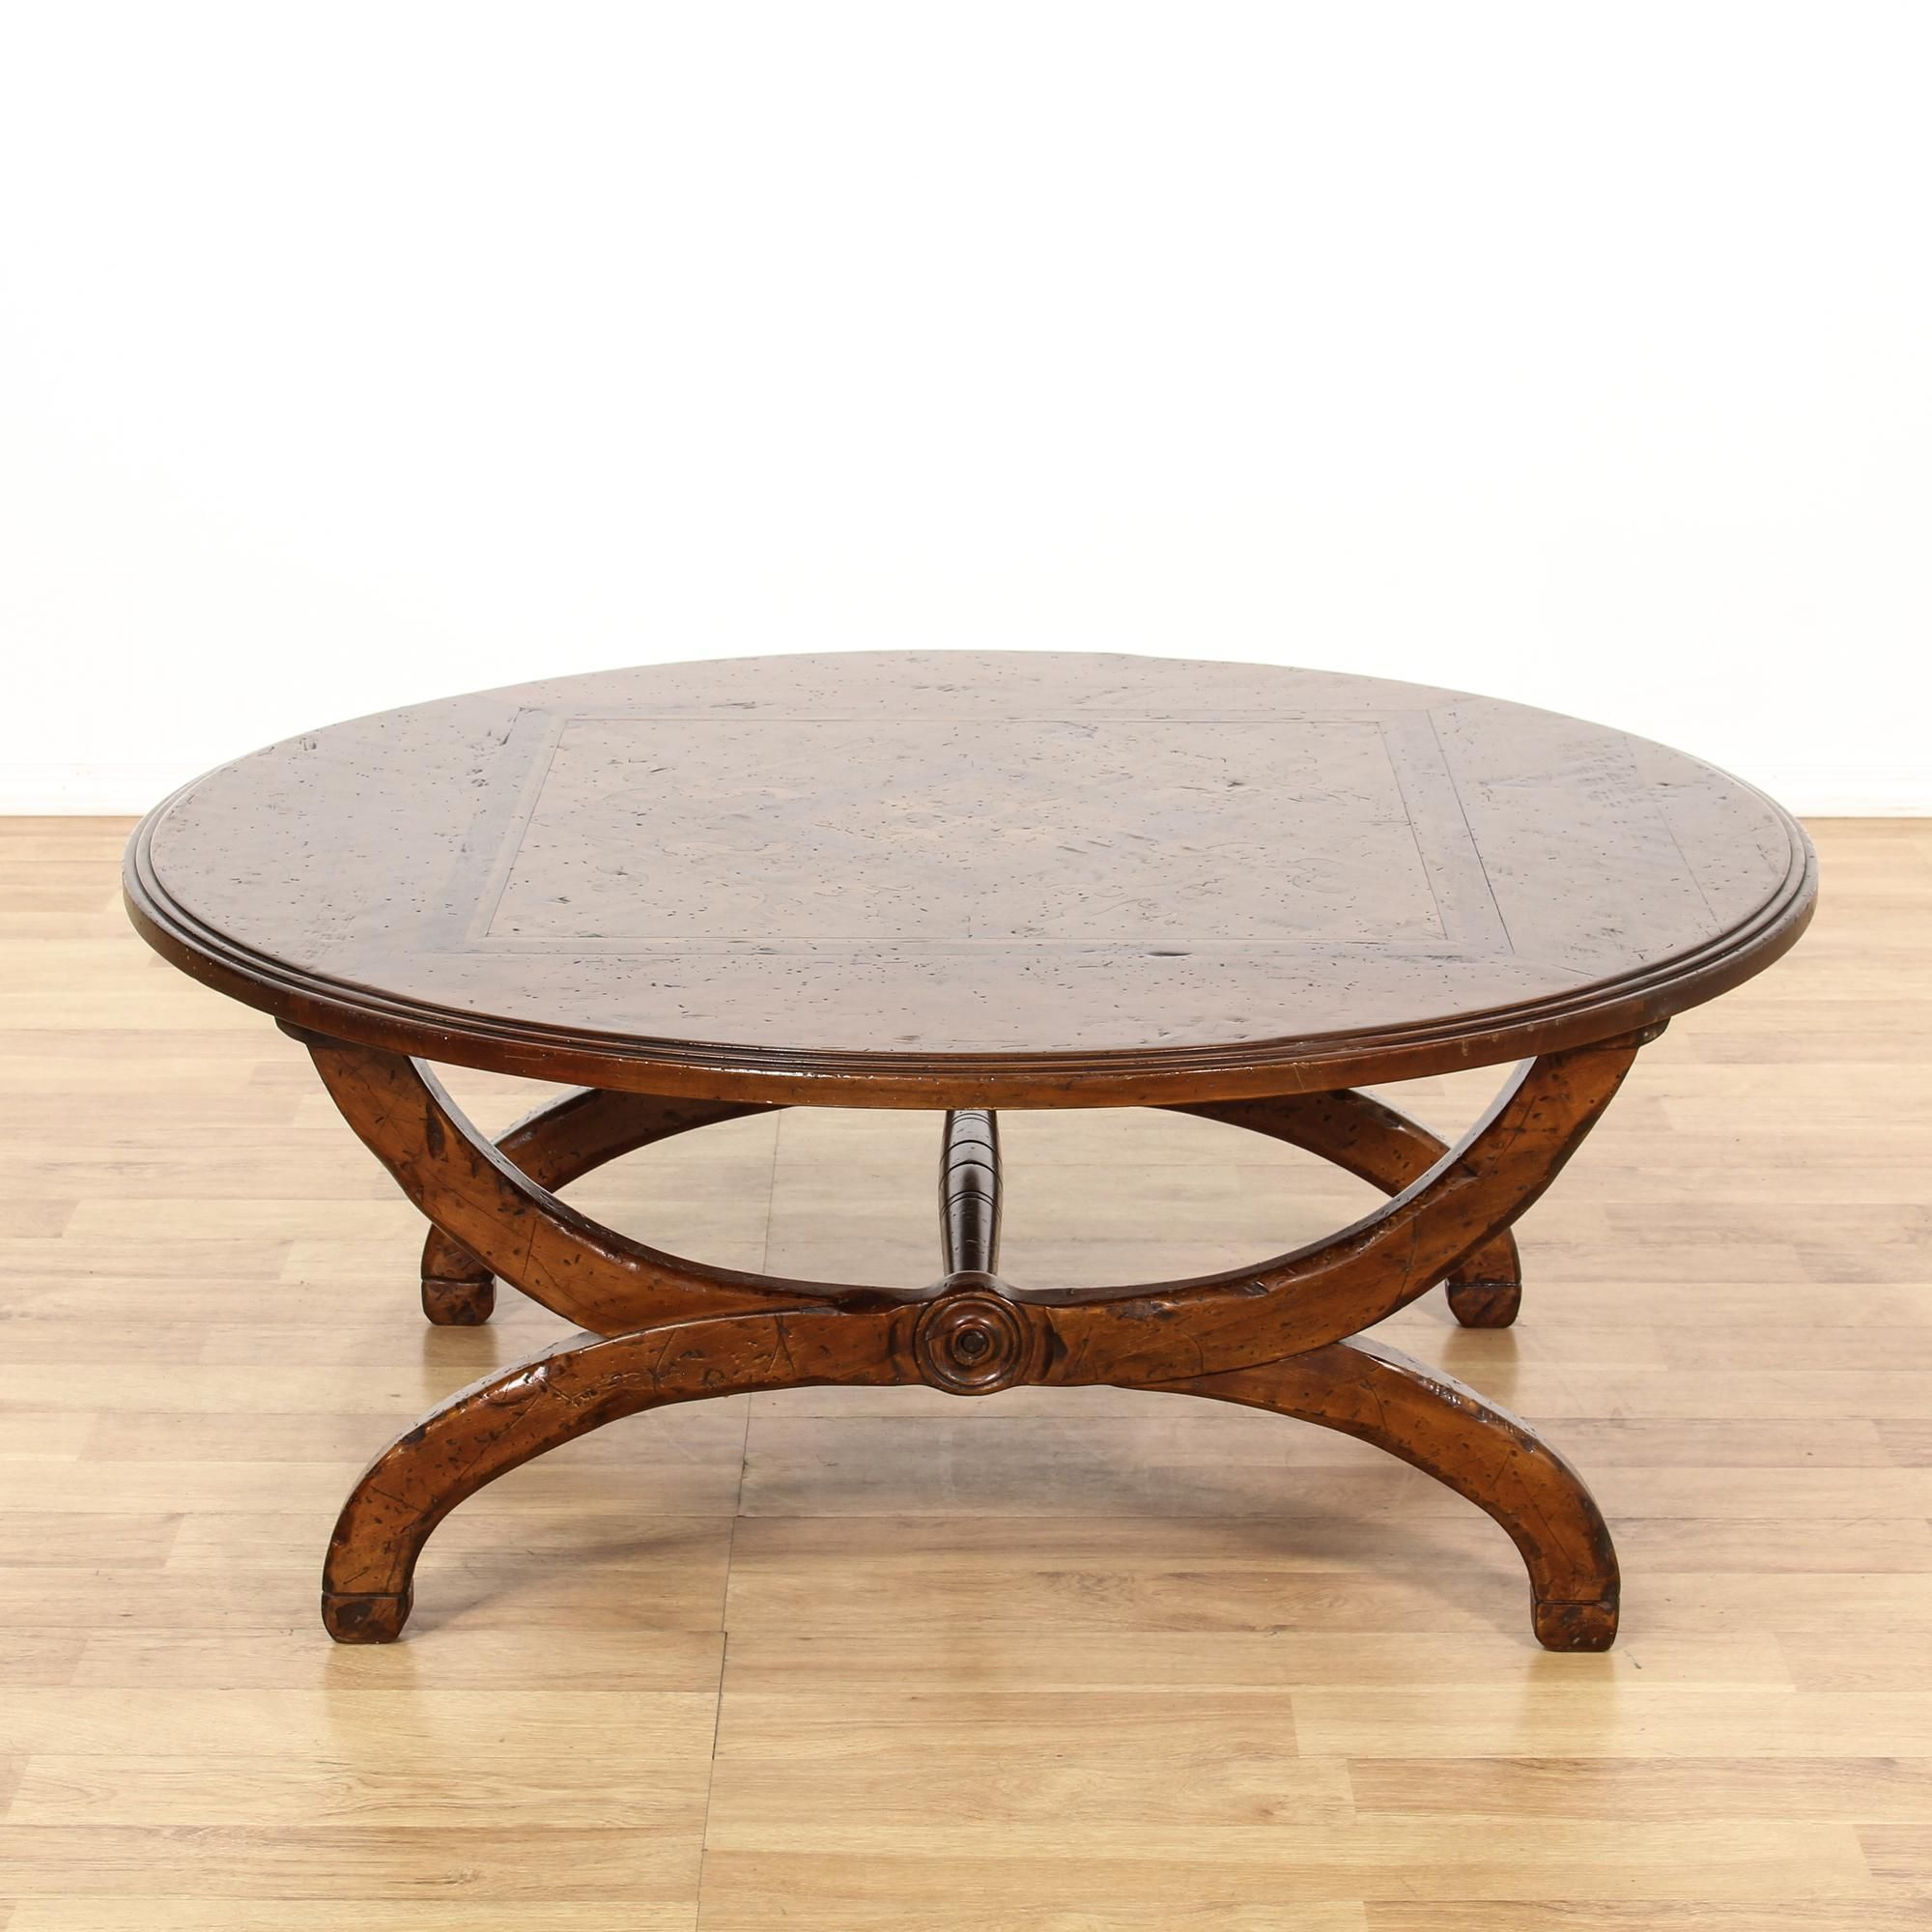 This Italian Coffee Table Is Featured In A Solid Wood With A Glossy Rustic Walnut Finish This Coffee Table Has A Round Ta Coffee Table Table Vintage Furniture